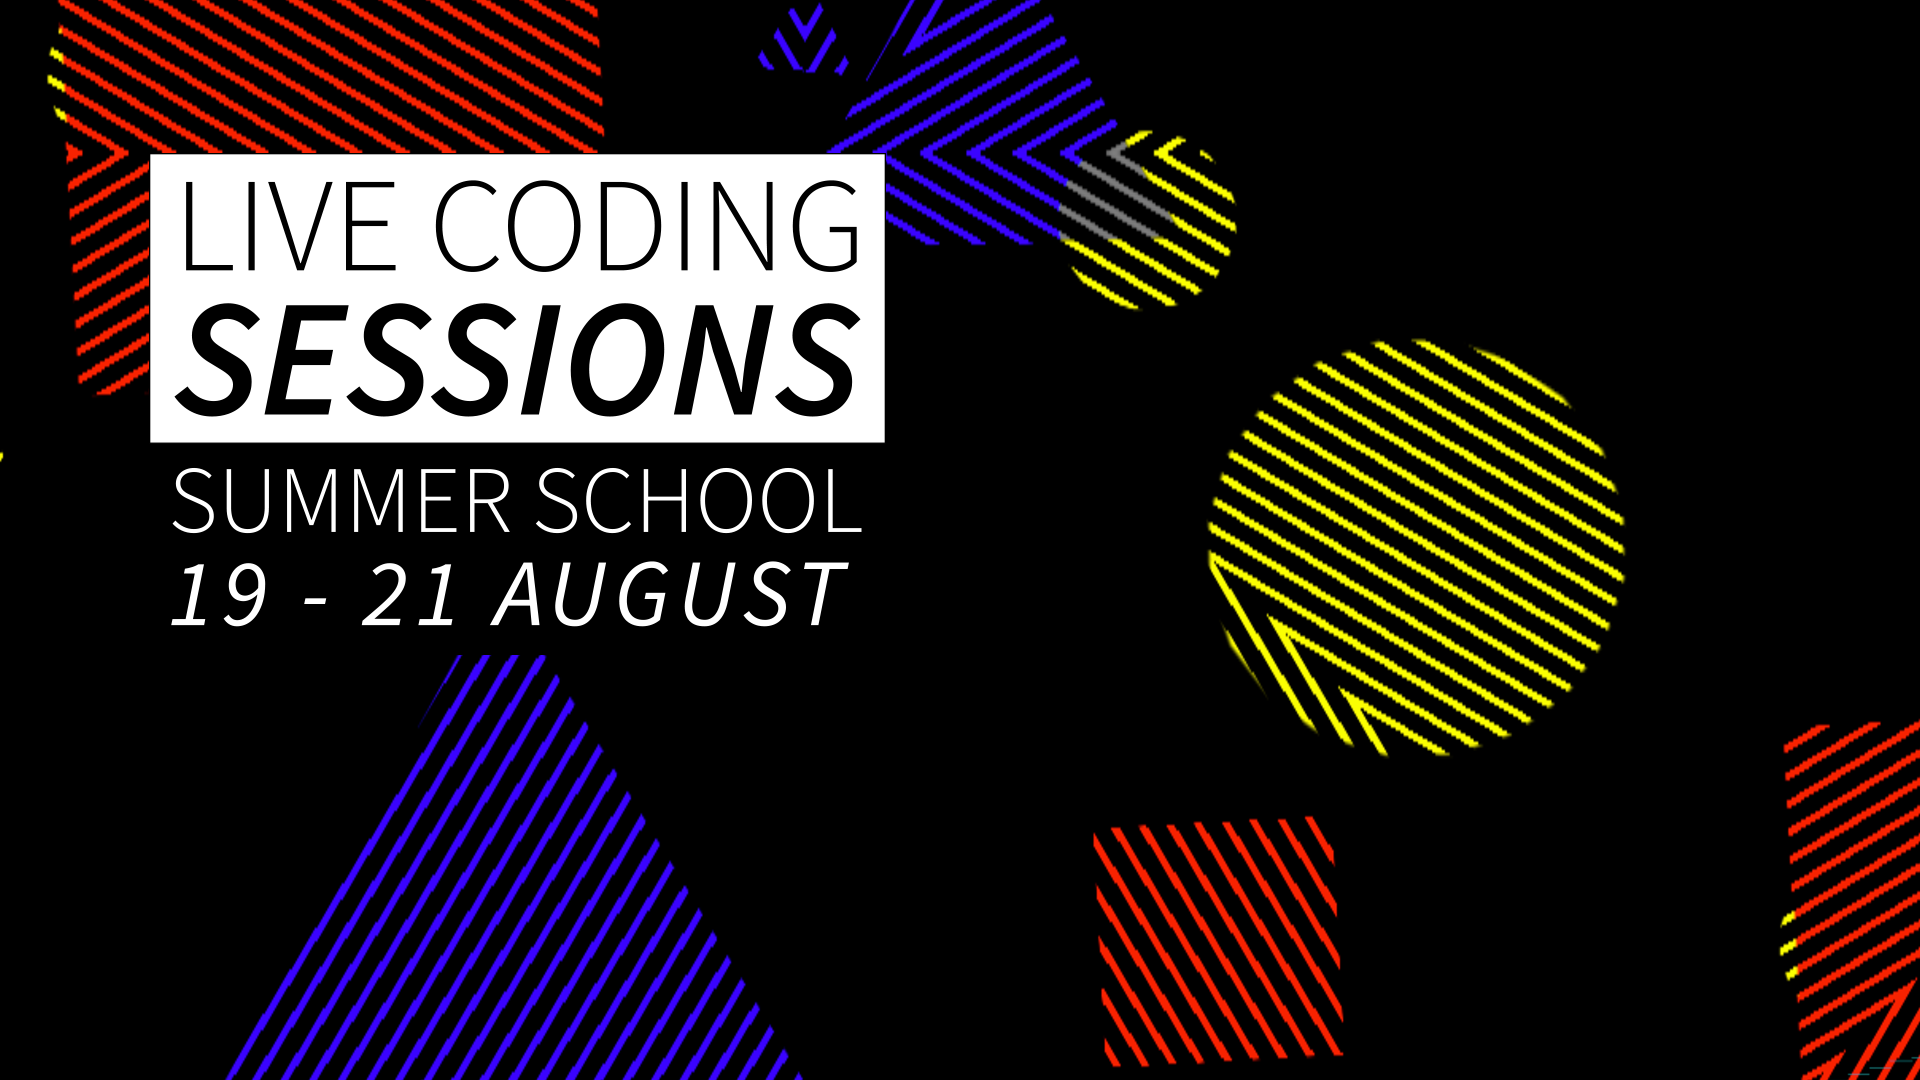 Live Coding Sessions Summer School 2020